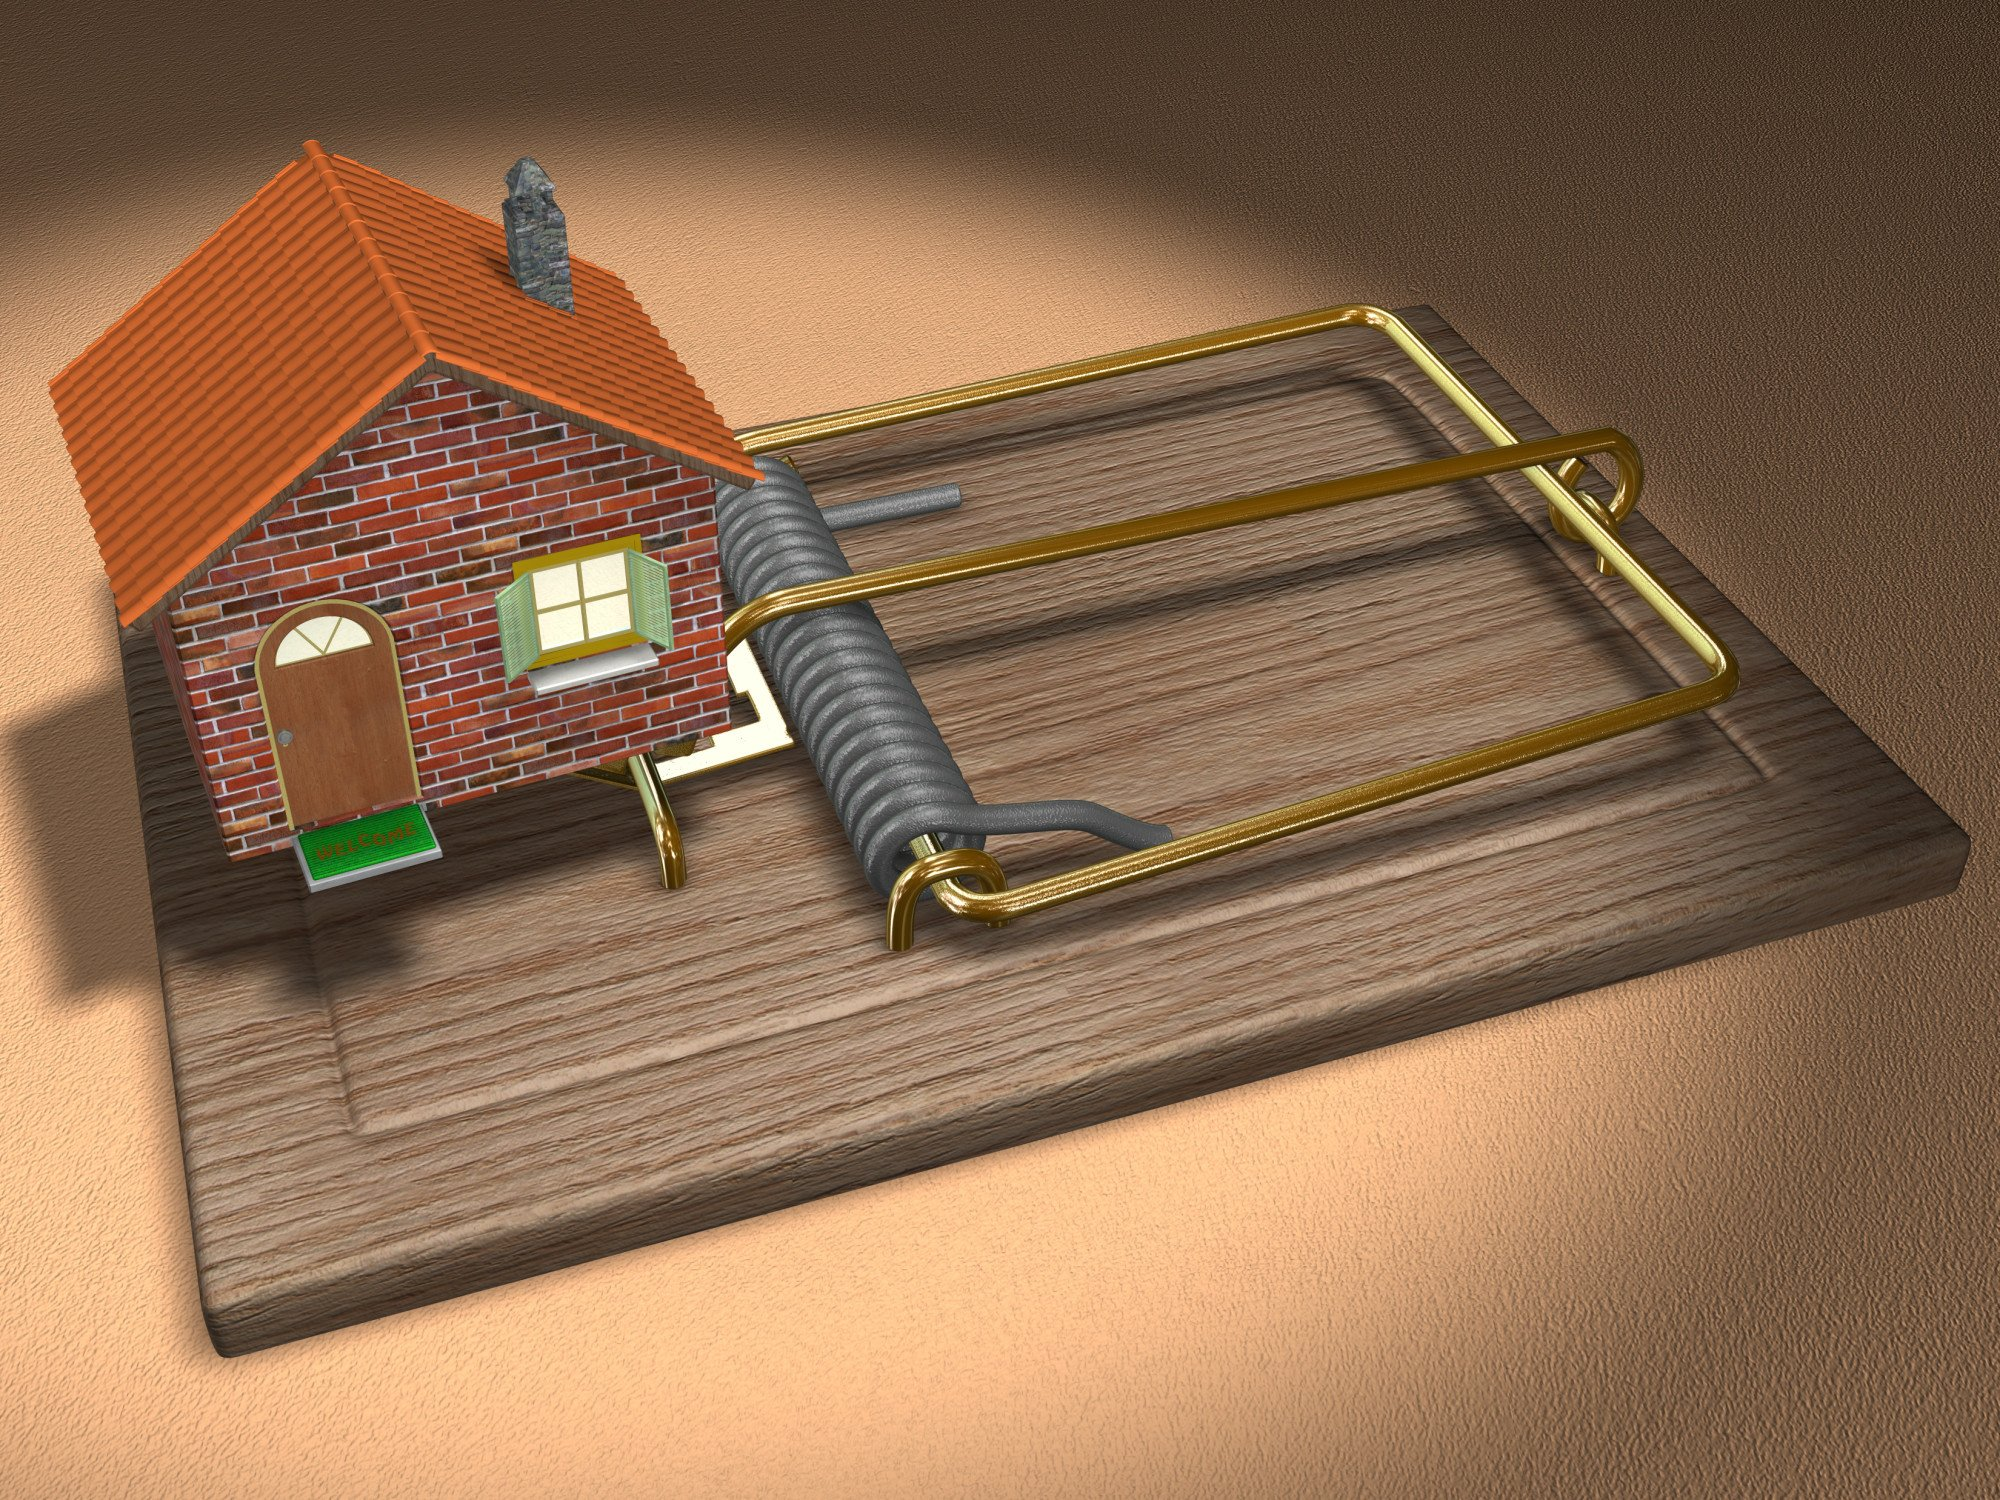 House in a mouse trap, symbolizing rental scams.